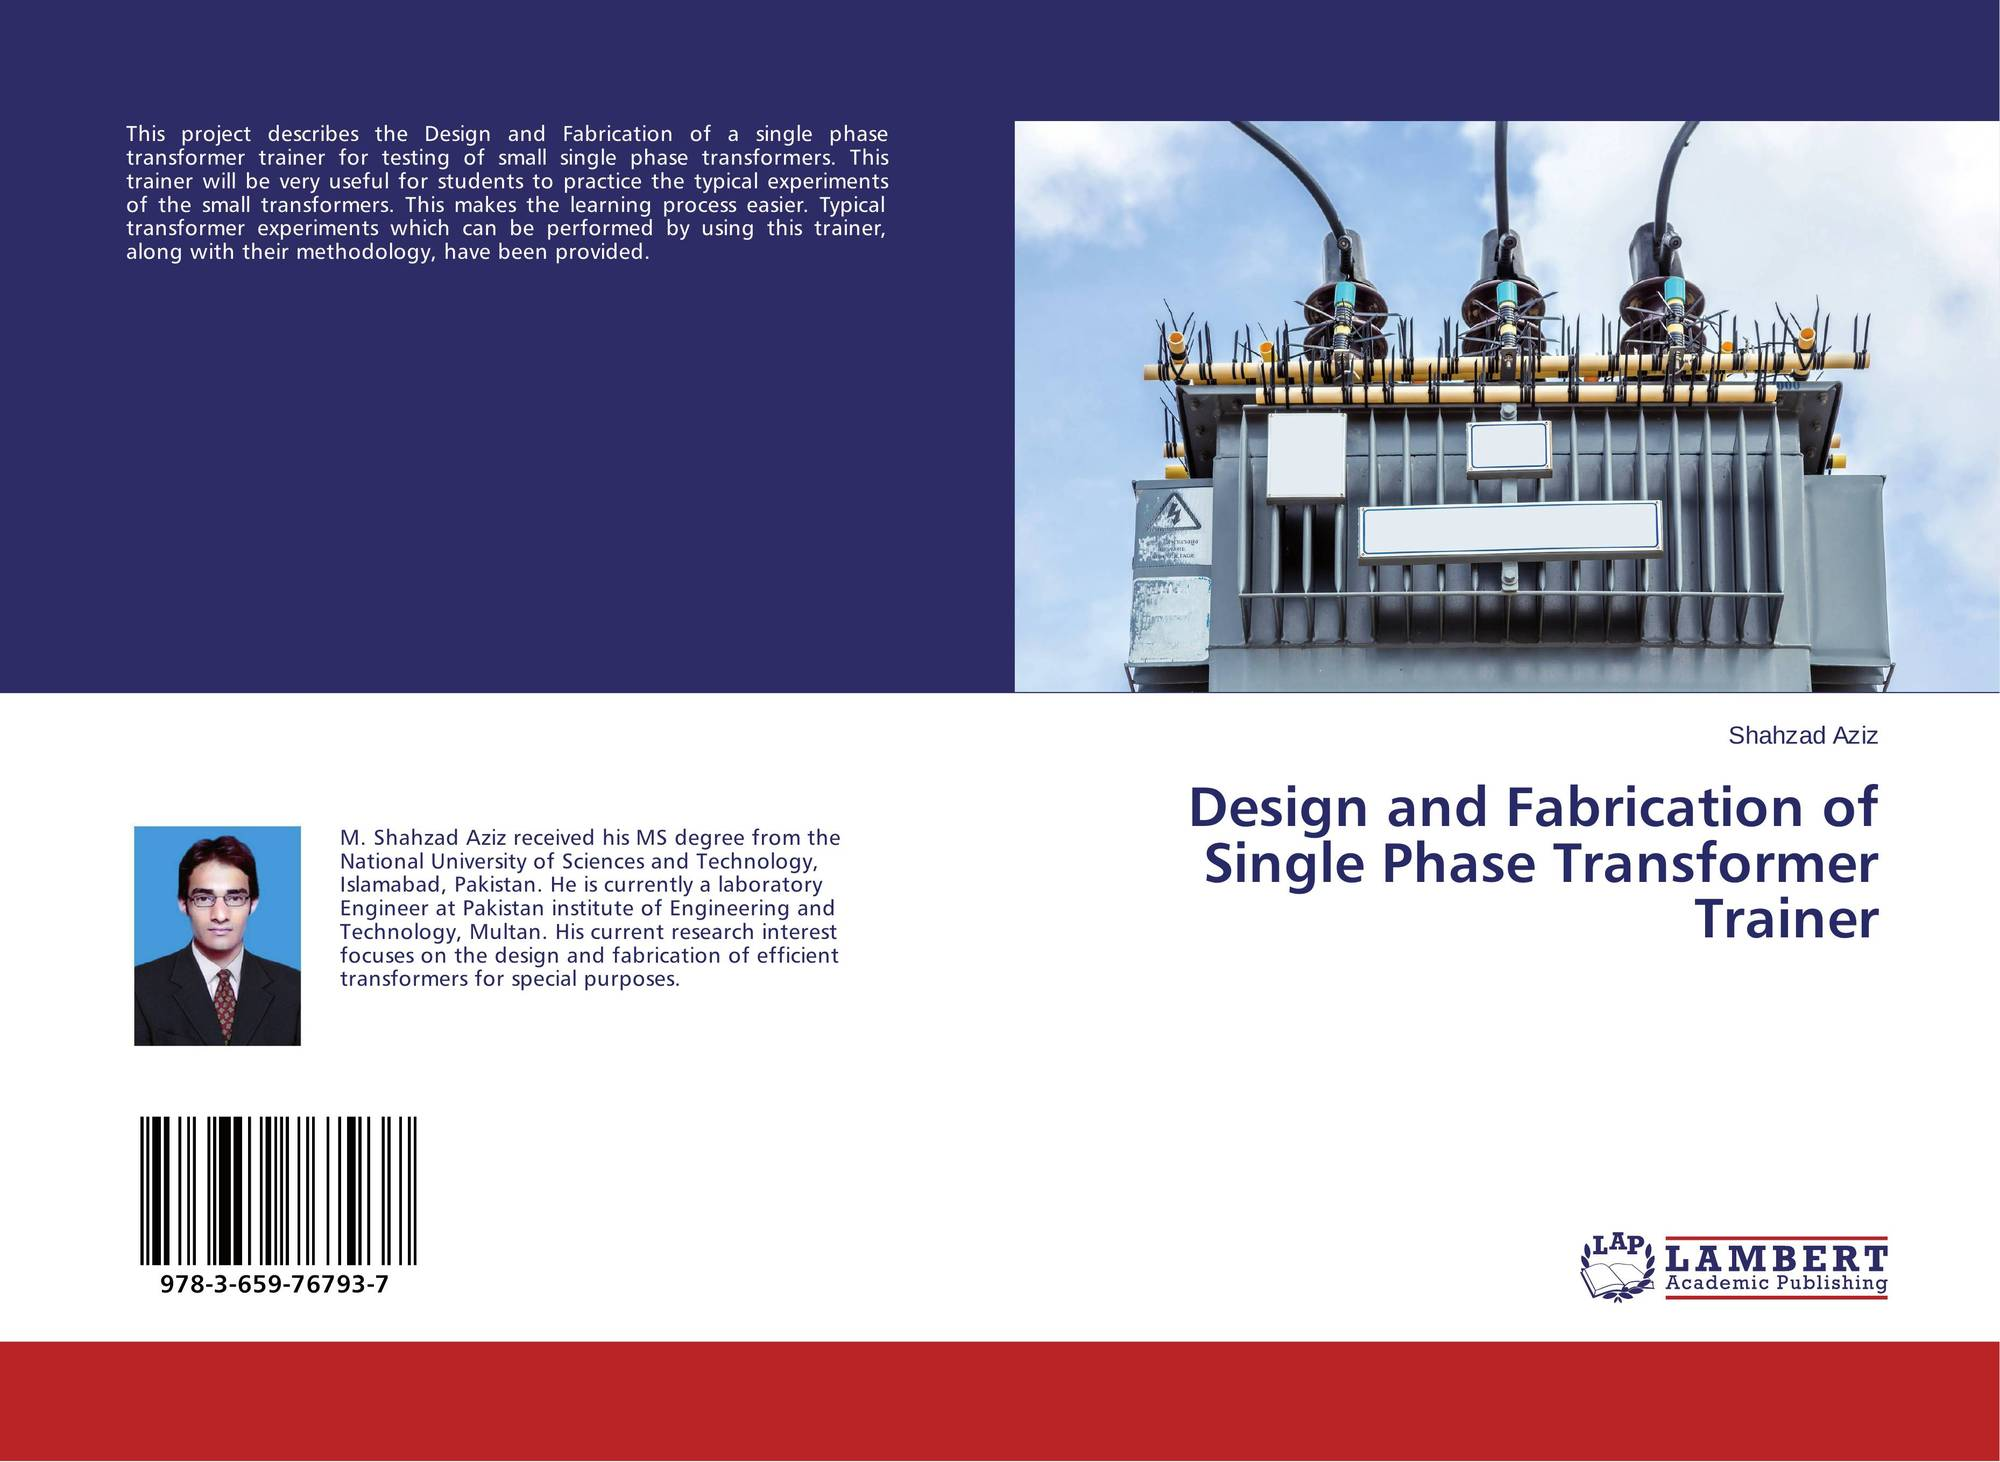 Design and Fabrication of Single Phase Transformer Trainer